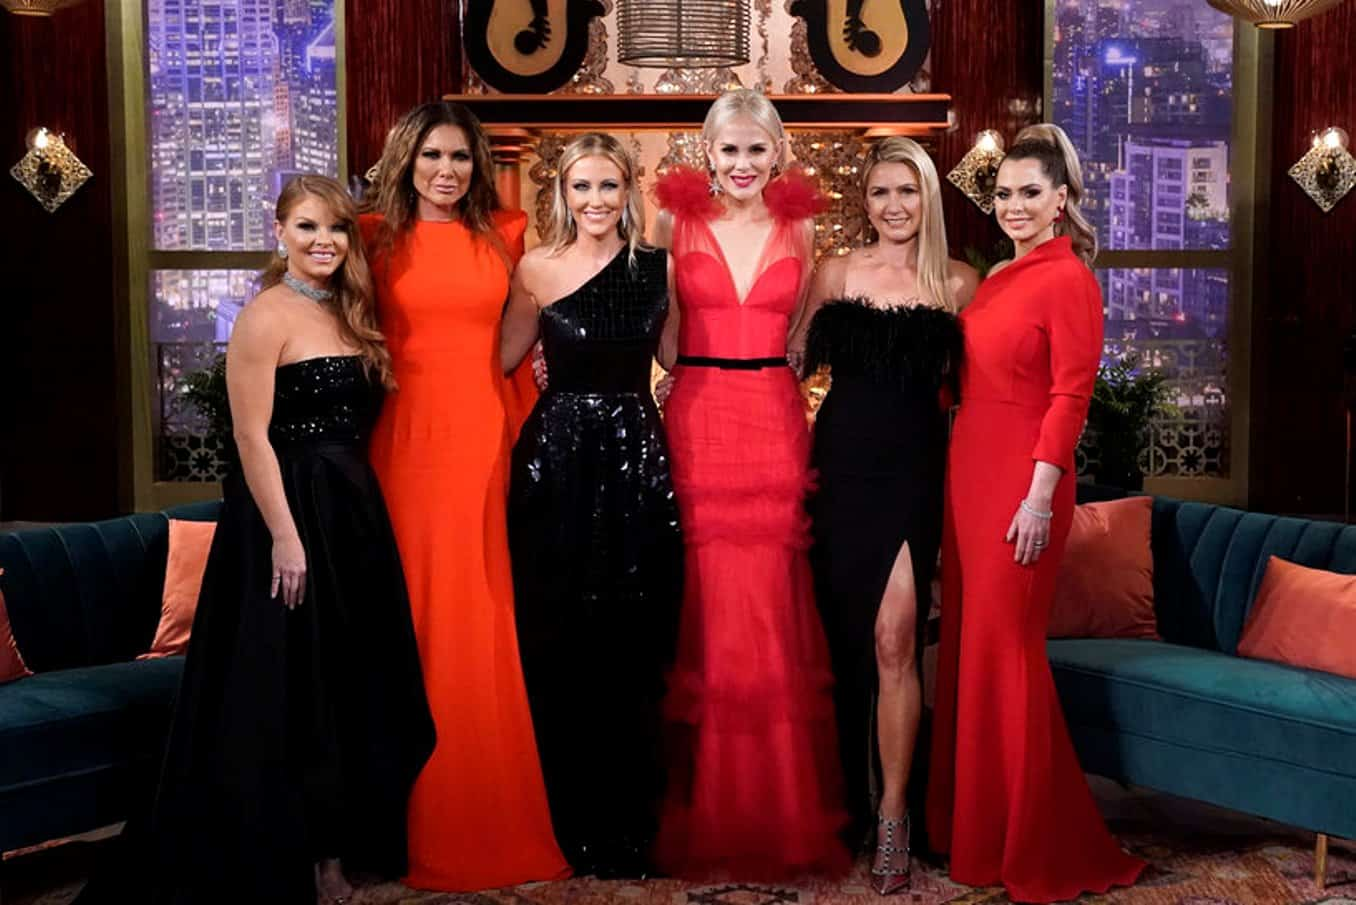 VIDEO: Watch the RHOD Reunion Trailer! Brandi Redmond Accuses LeeAnne Locken of Racism and Stephanie Hollman Questions Her Friendship With Kameron Westcott